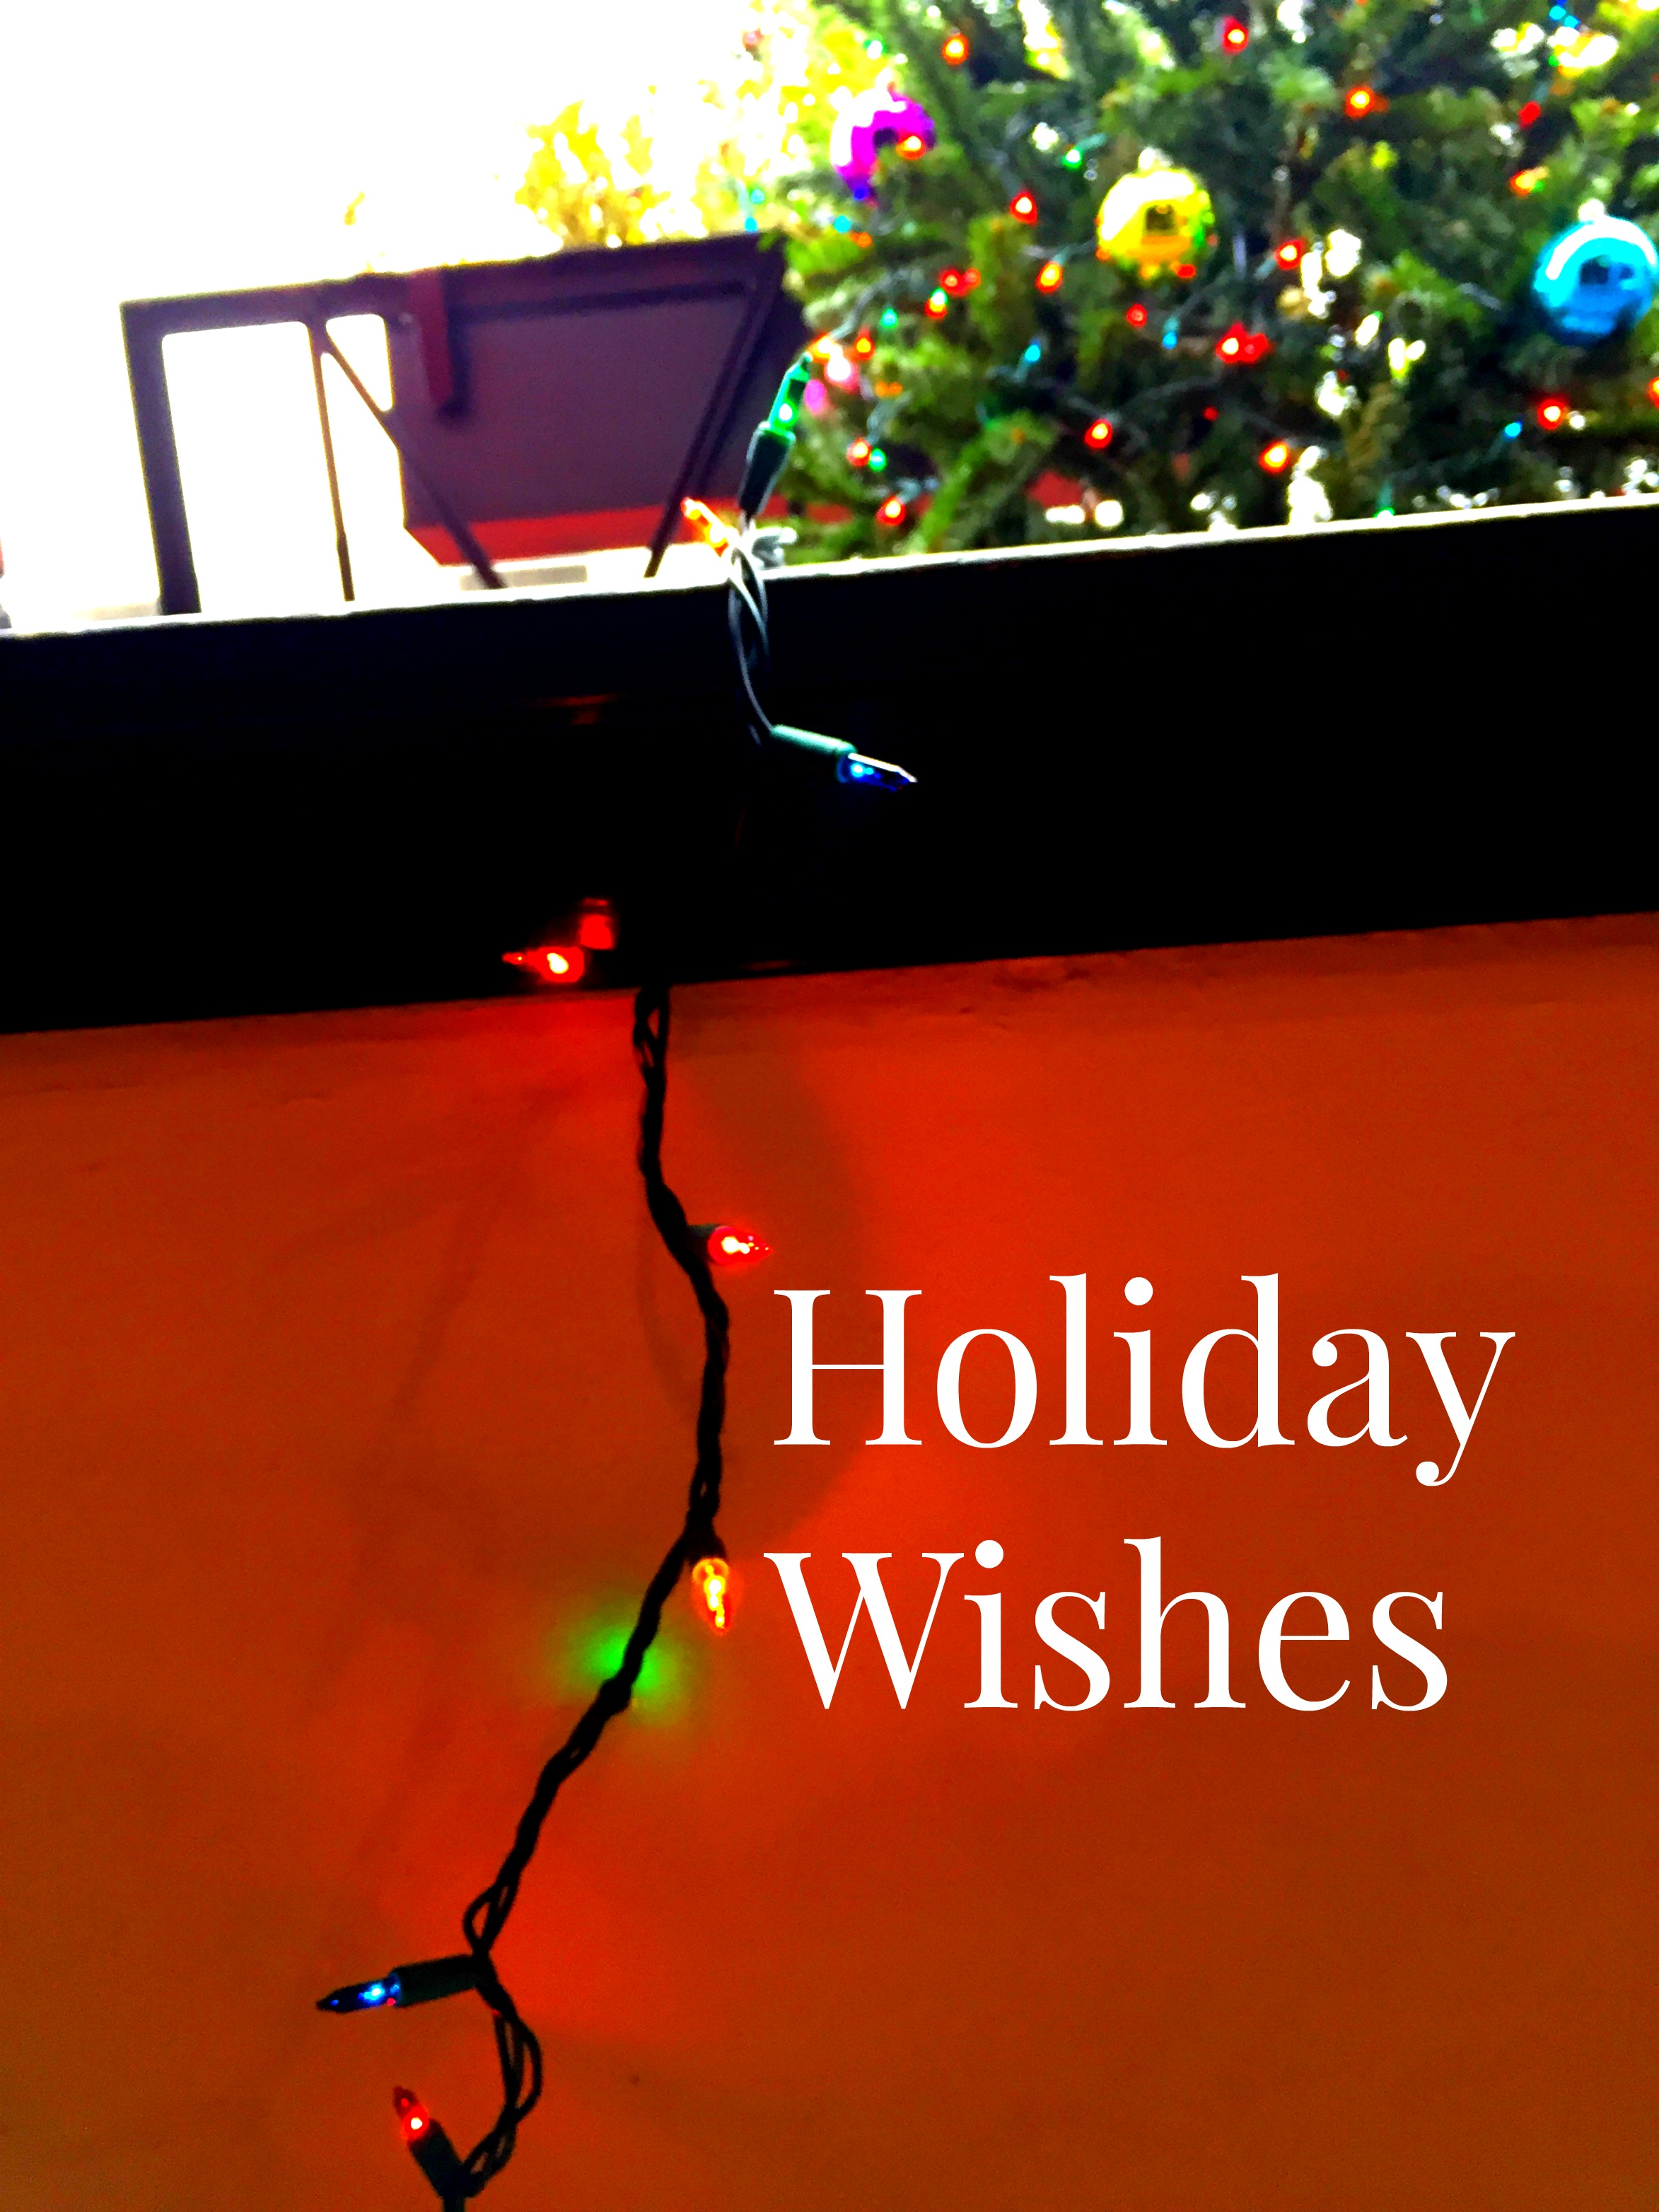 holiday-wishes.jpg